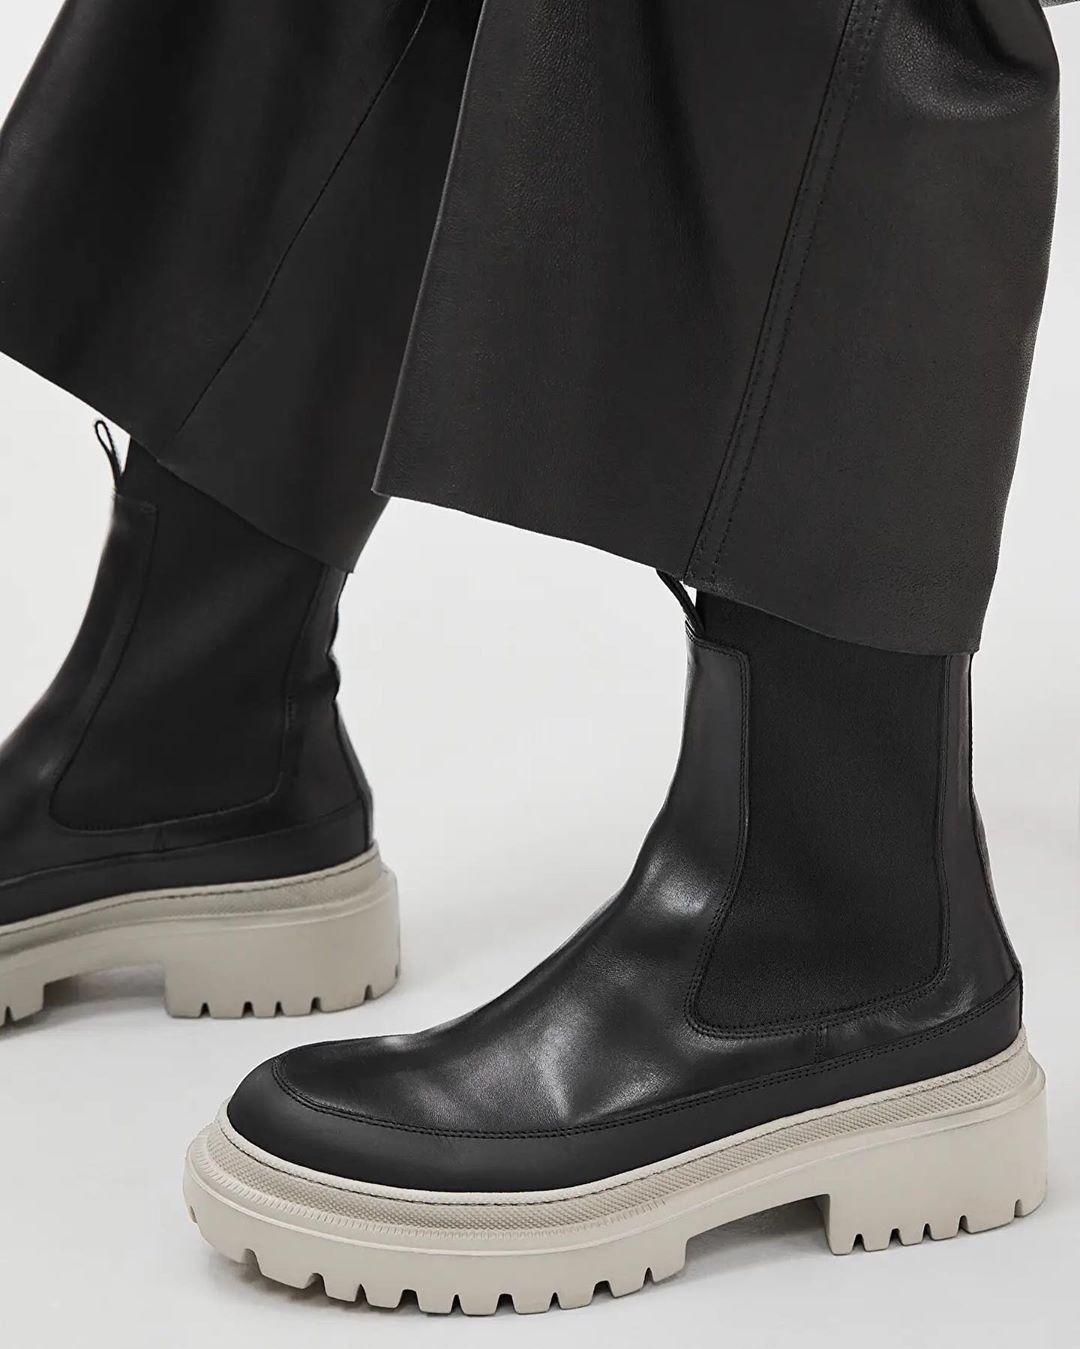 Vegetable tanned leather, Leather boots